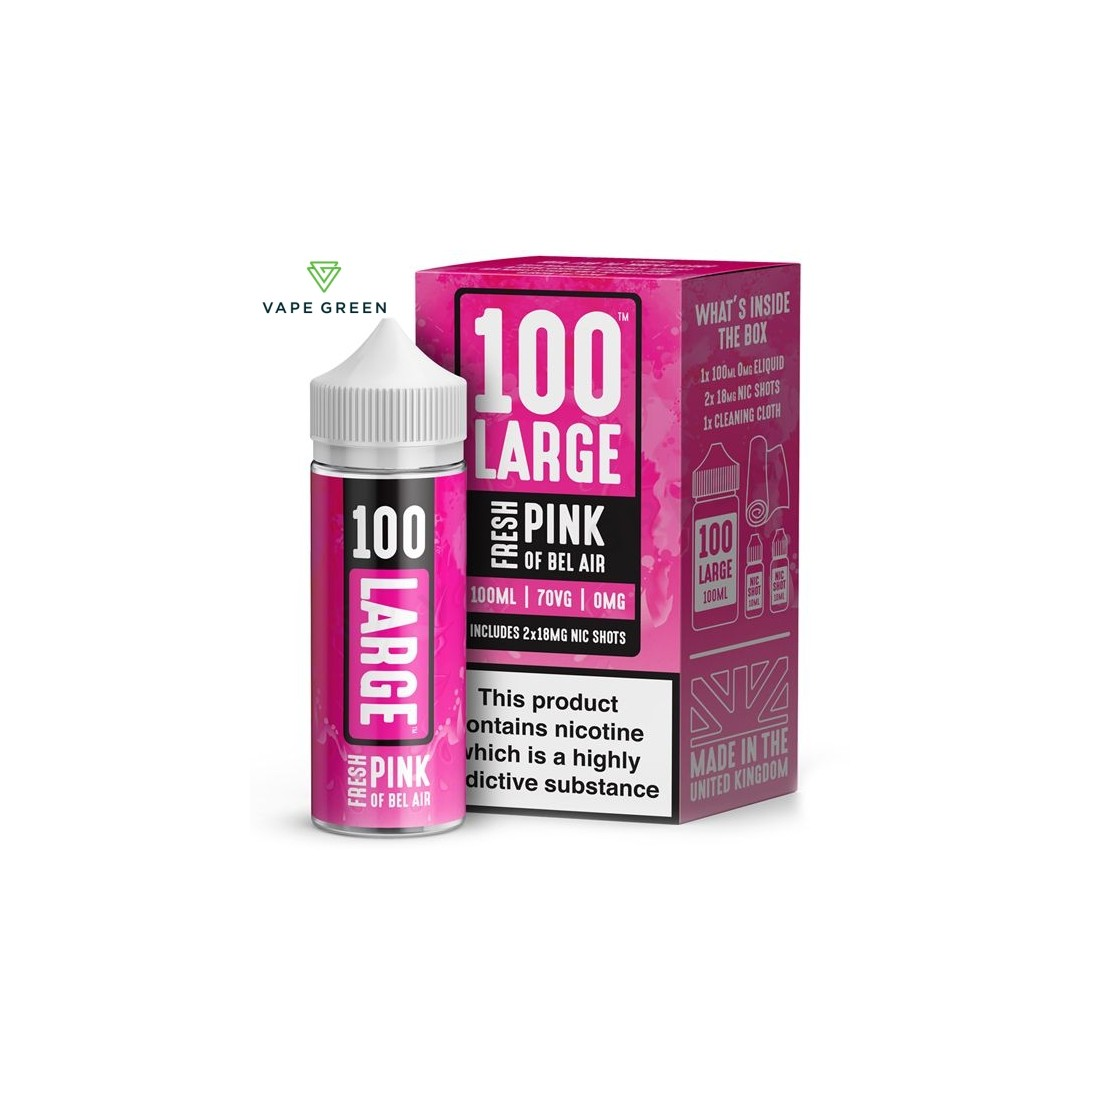 Fresh Pink Of Bel Air E-Liquid by 100 Large